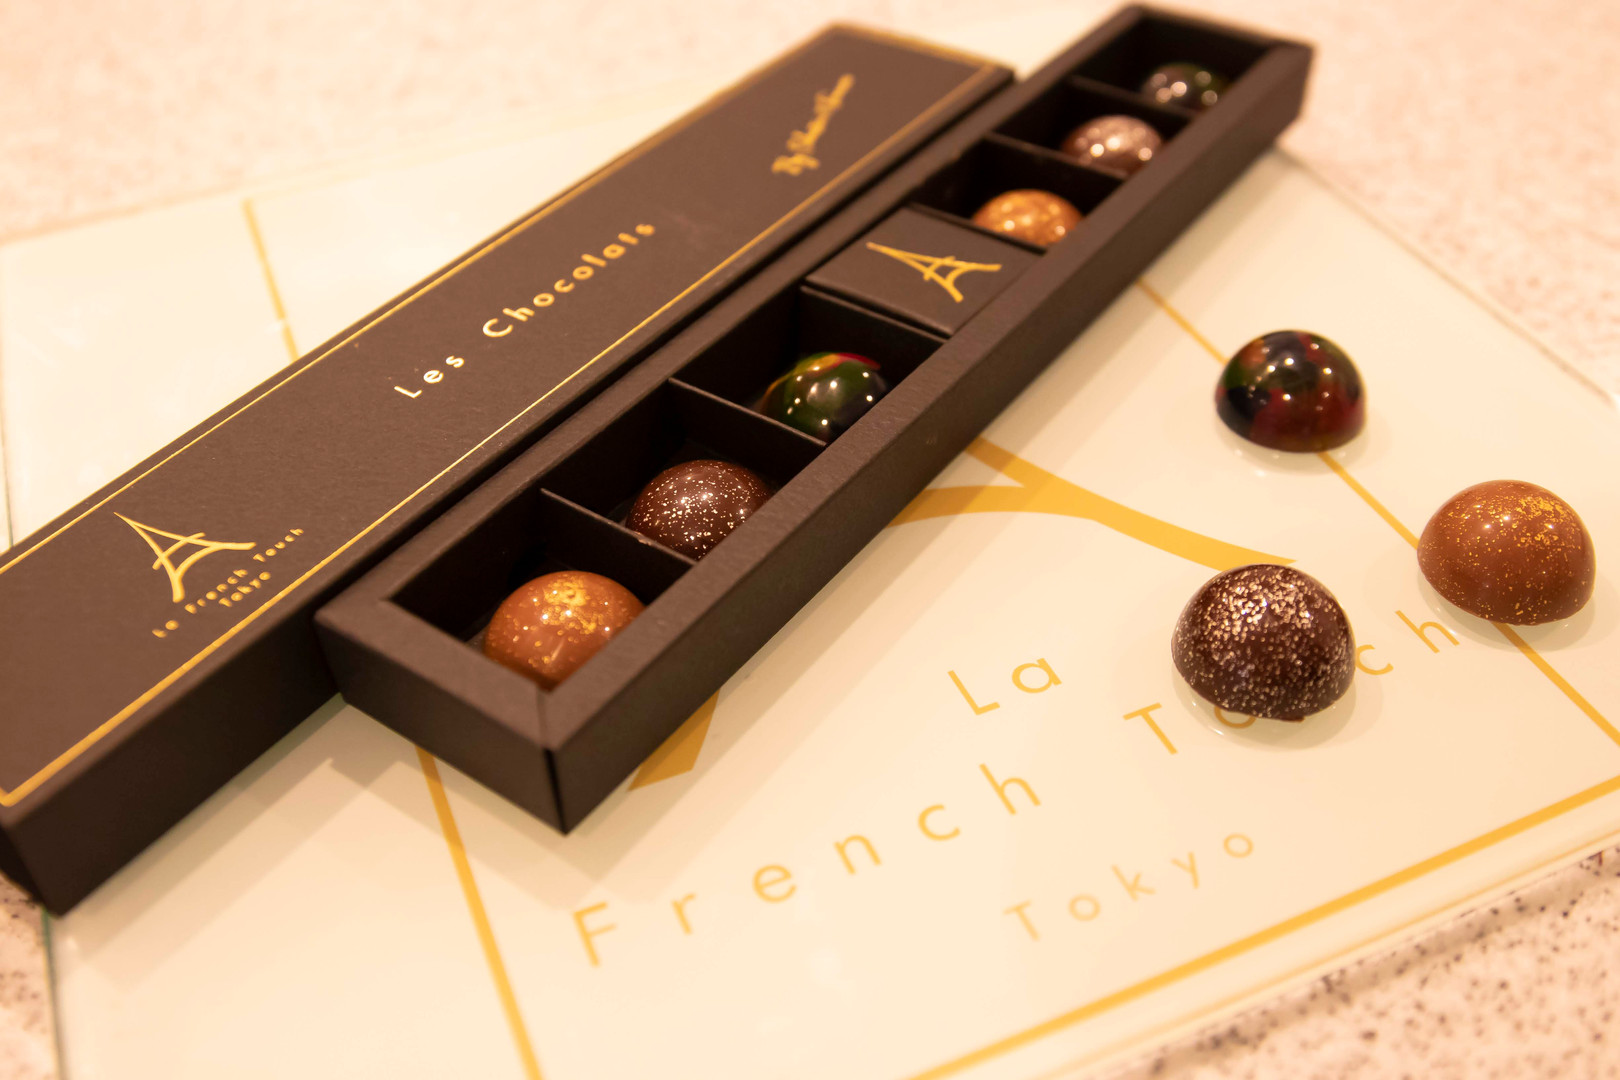 Prestigious chocolates boxes